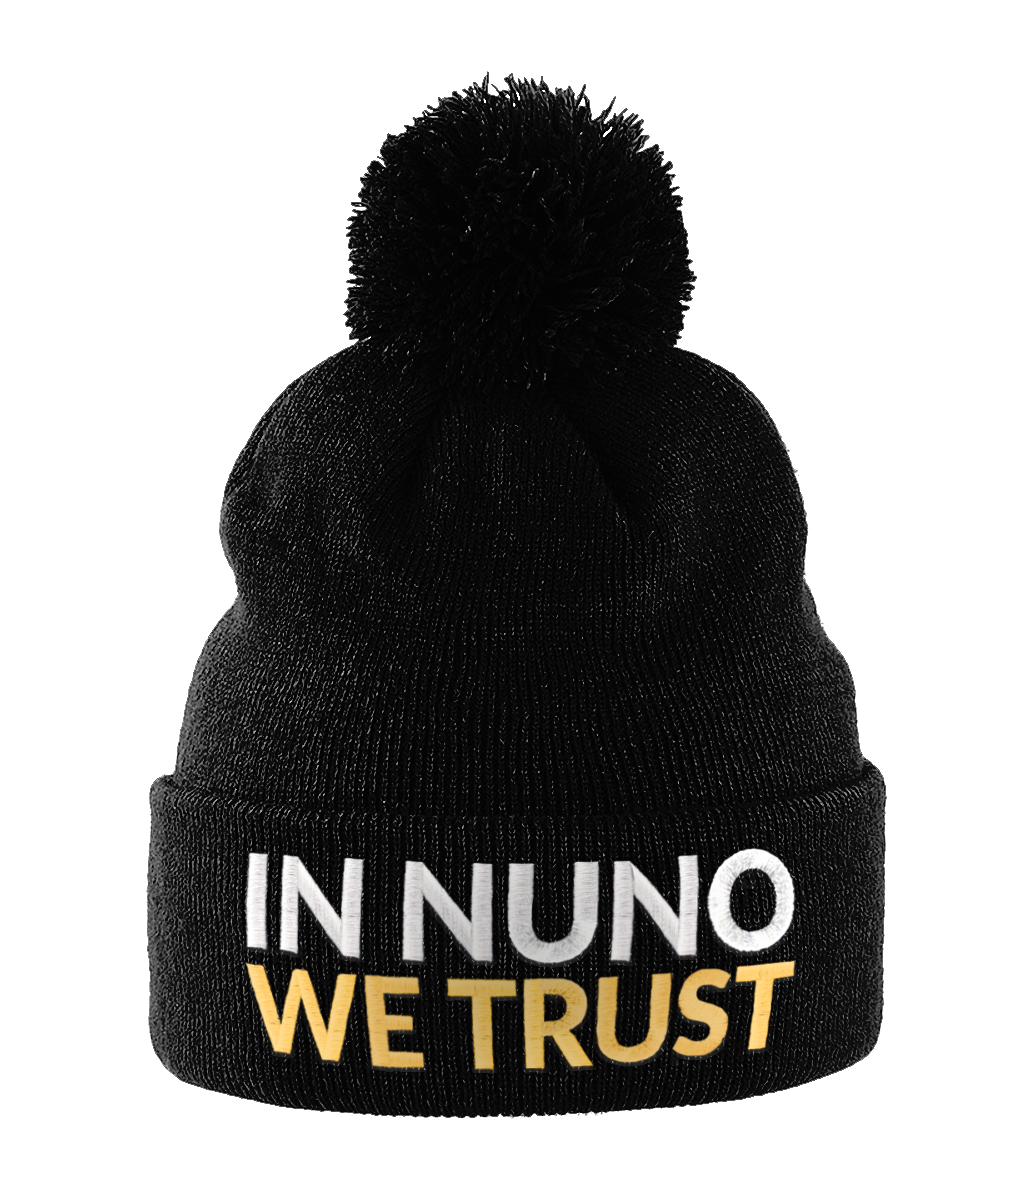 In Nuno We Trust Bobble Beanie